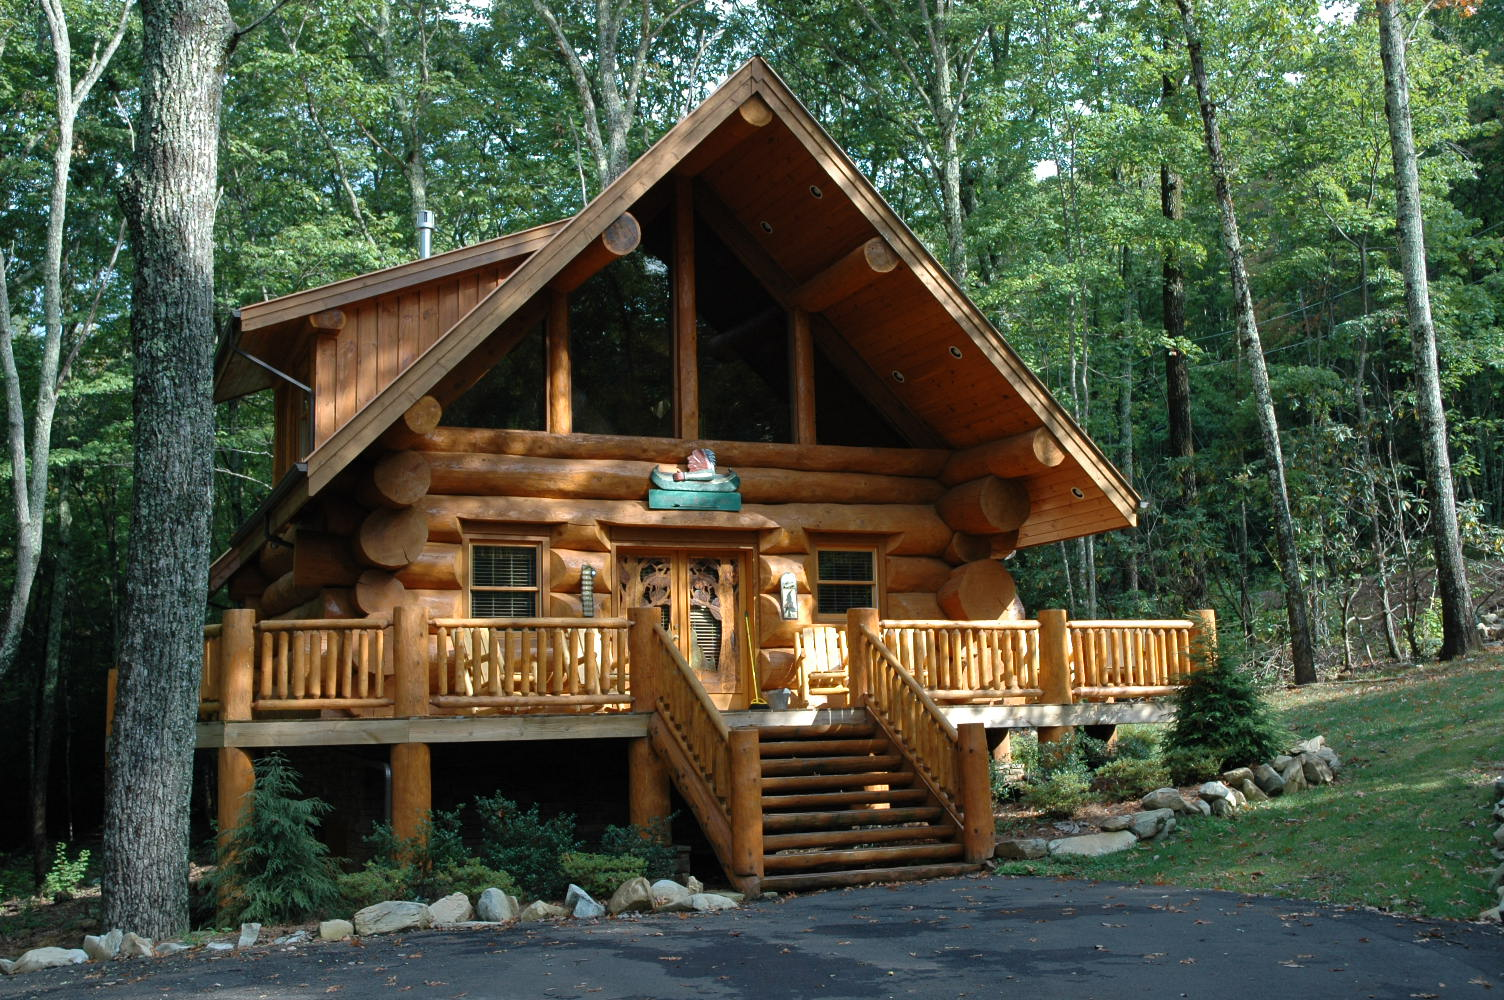 rentals info tn cabins interior cabin house access companies rental gatlinburg pigeon pool tennessee with forge onlinechange